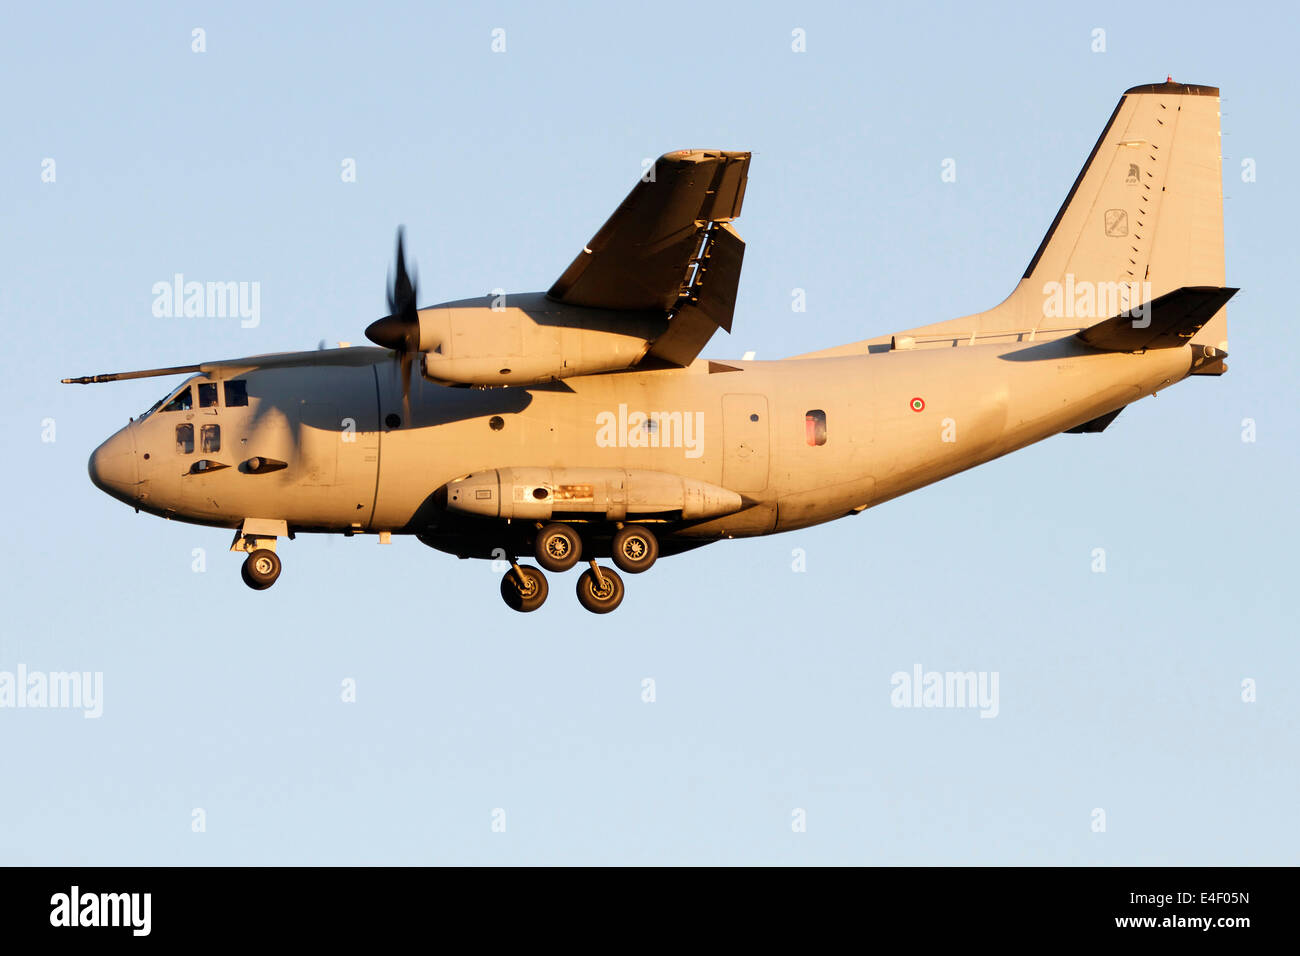 An Alenia C-27J Spartan of the Italian Air Force in flight over Turin Airport, Italy. - Stock Image